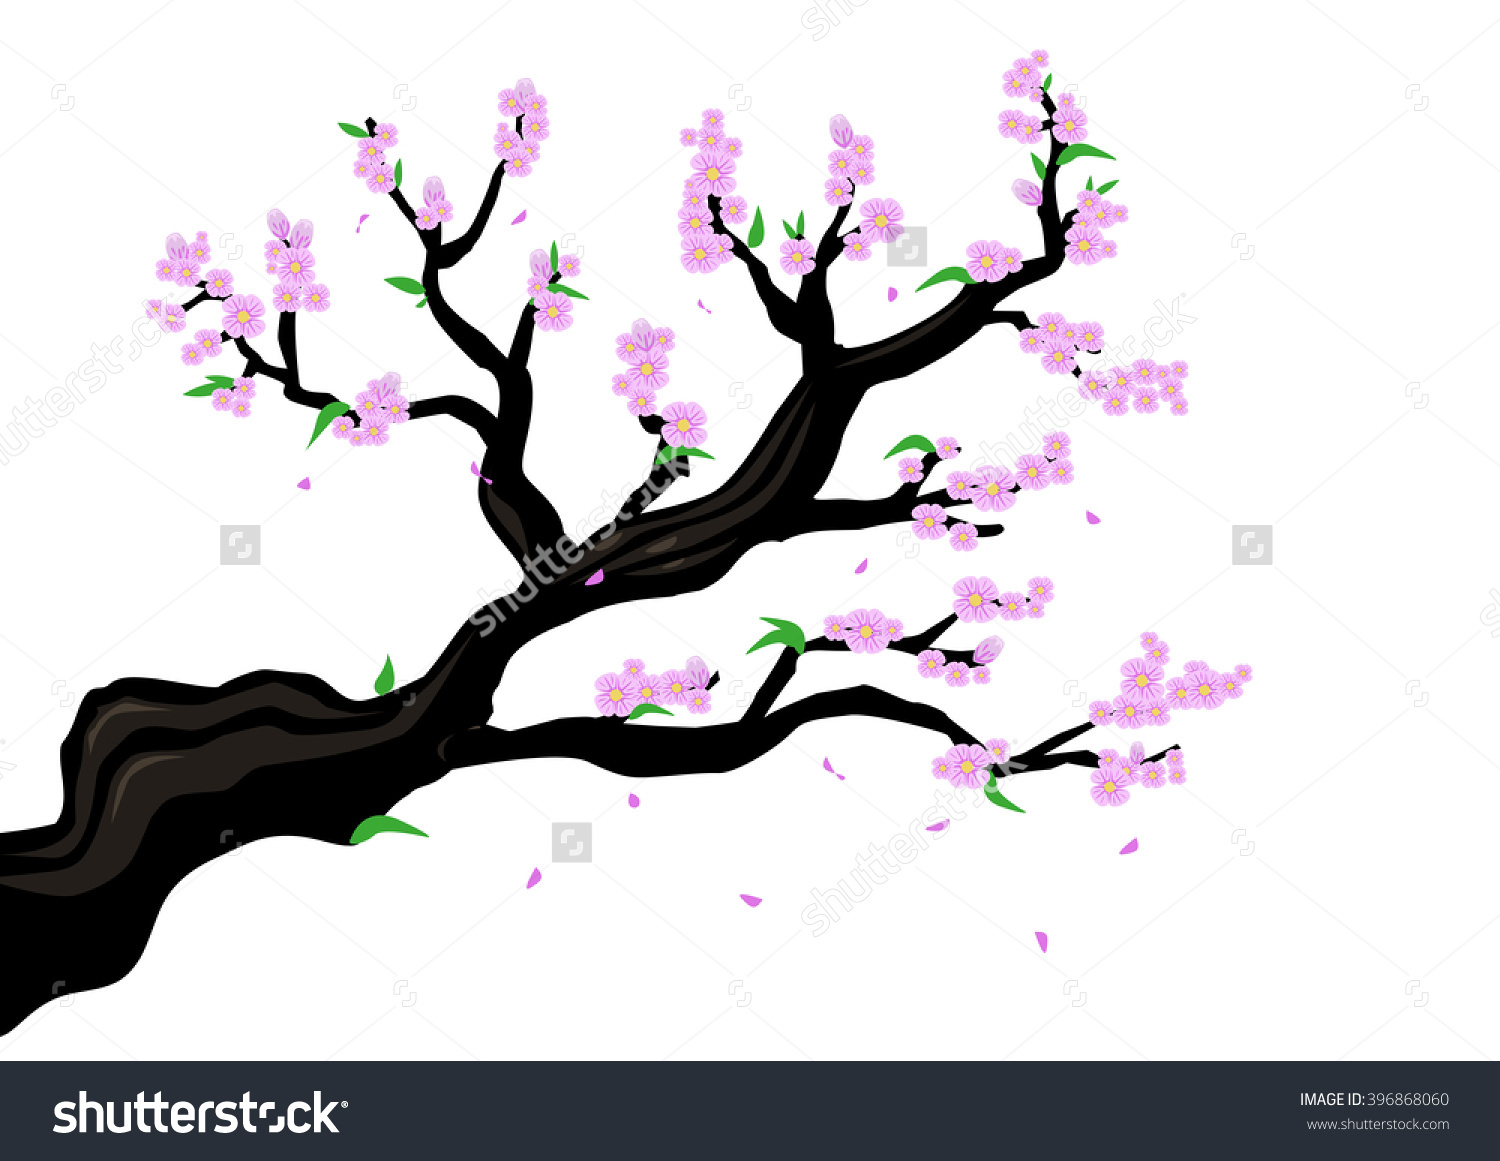 Prunus Blossom clipart #18, Download drawings